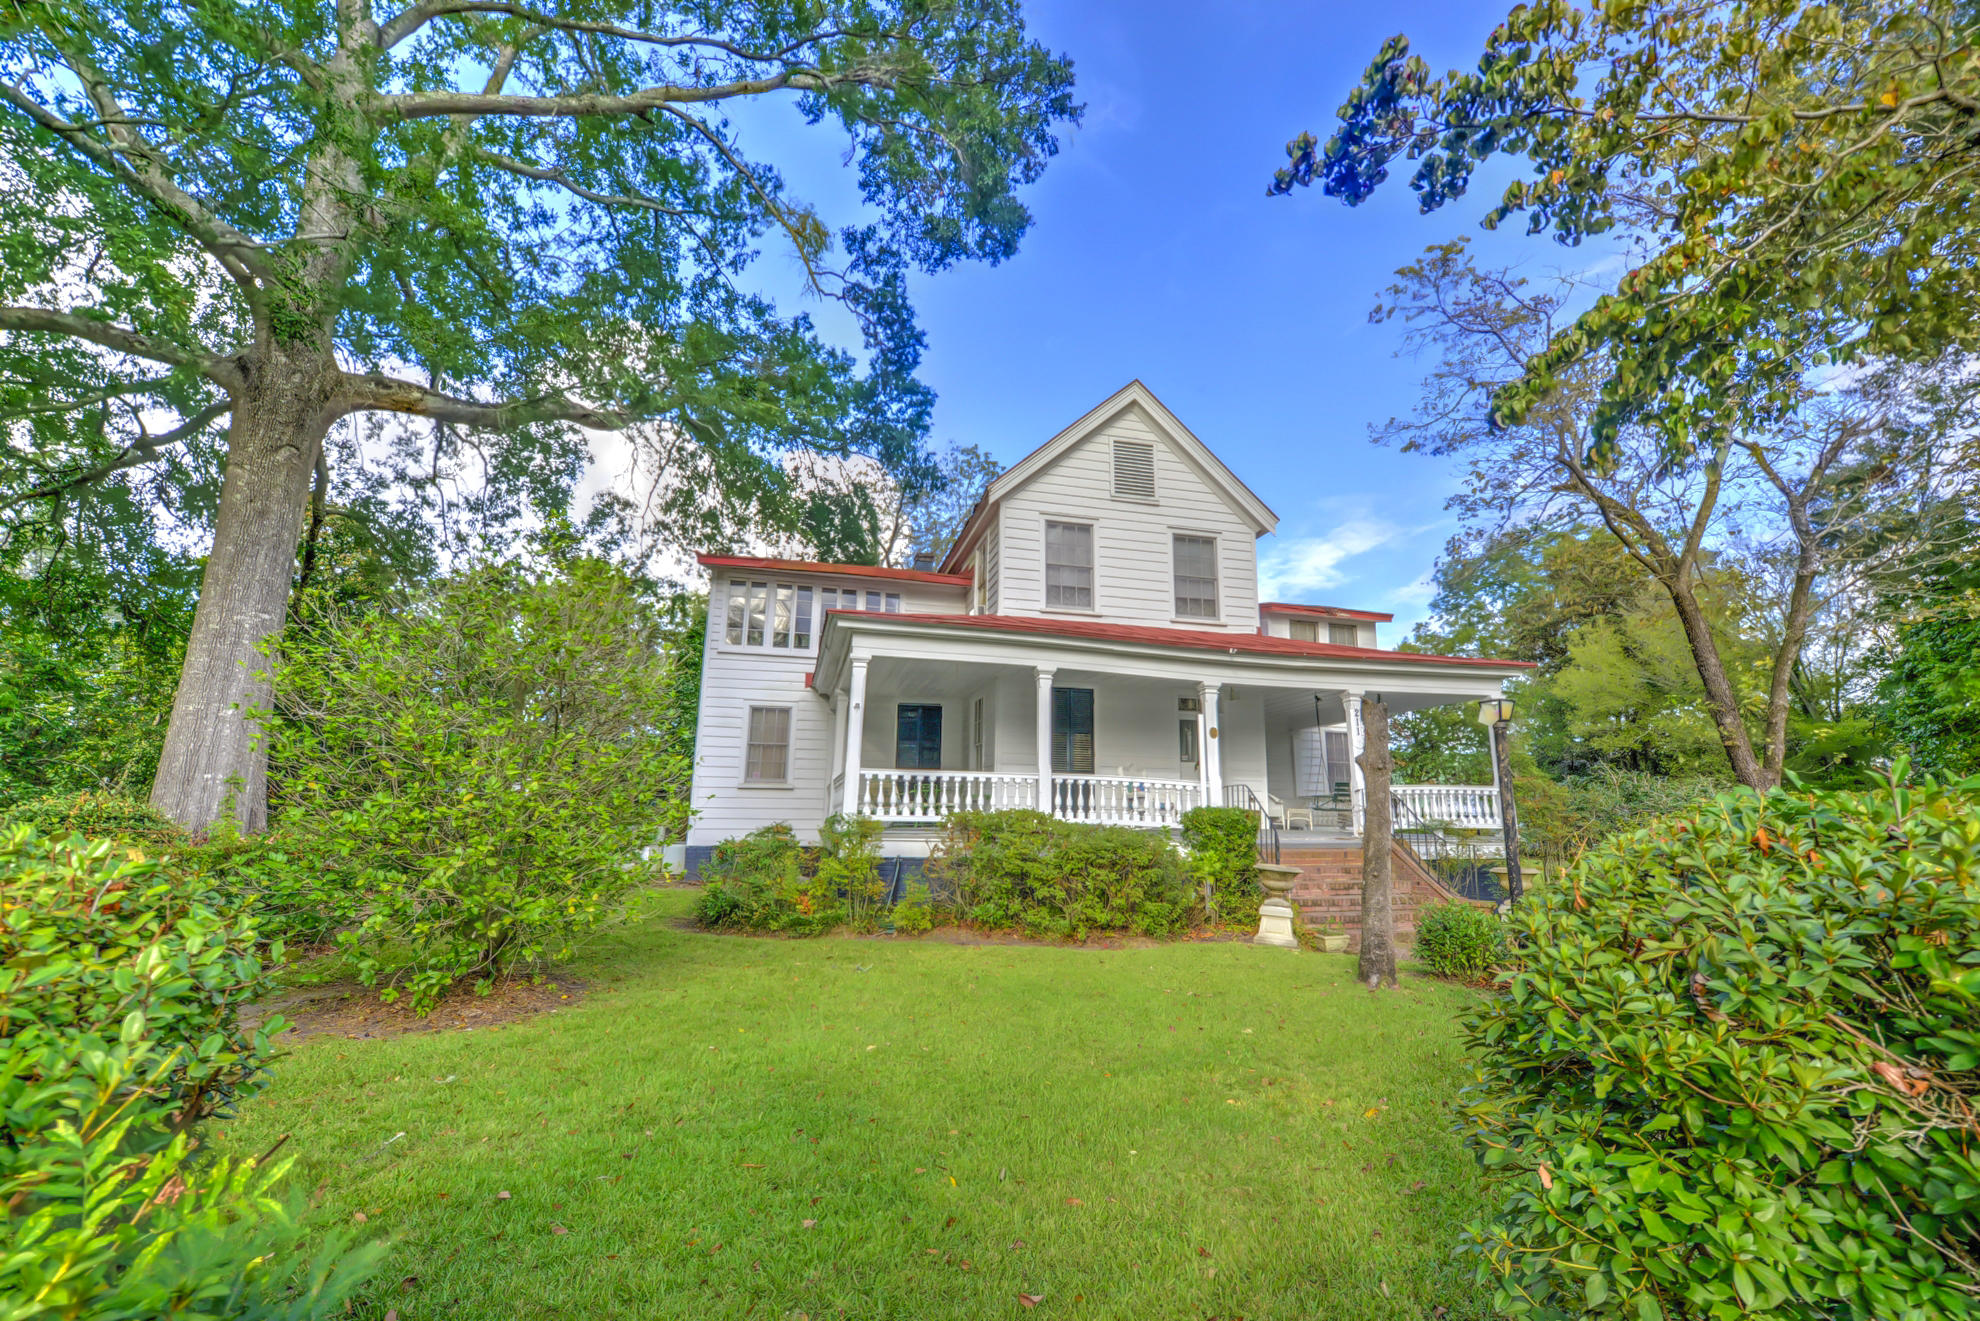 Photo of 211 W Richardson Ave, Summerville, SC 29483